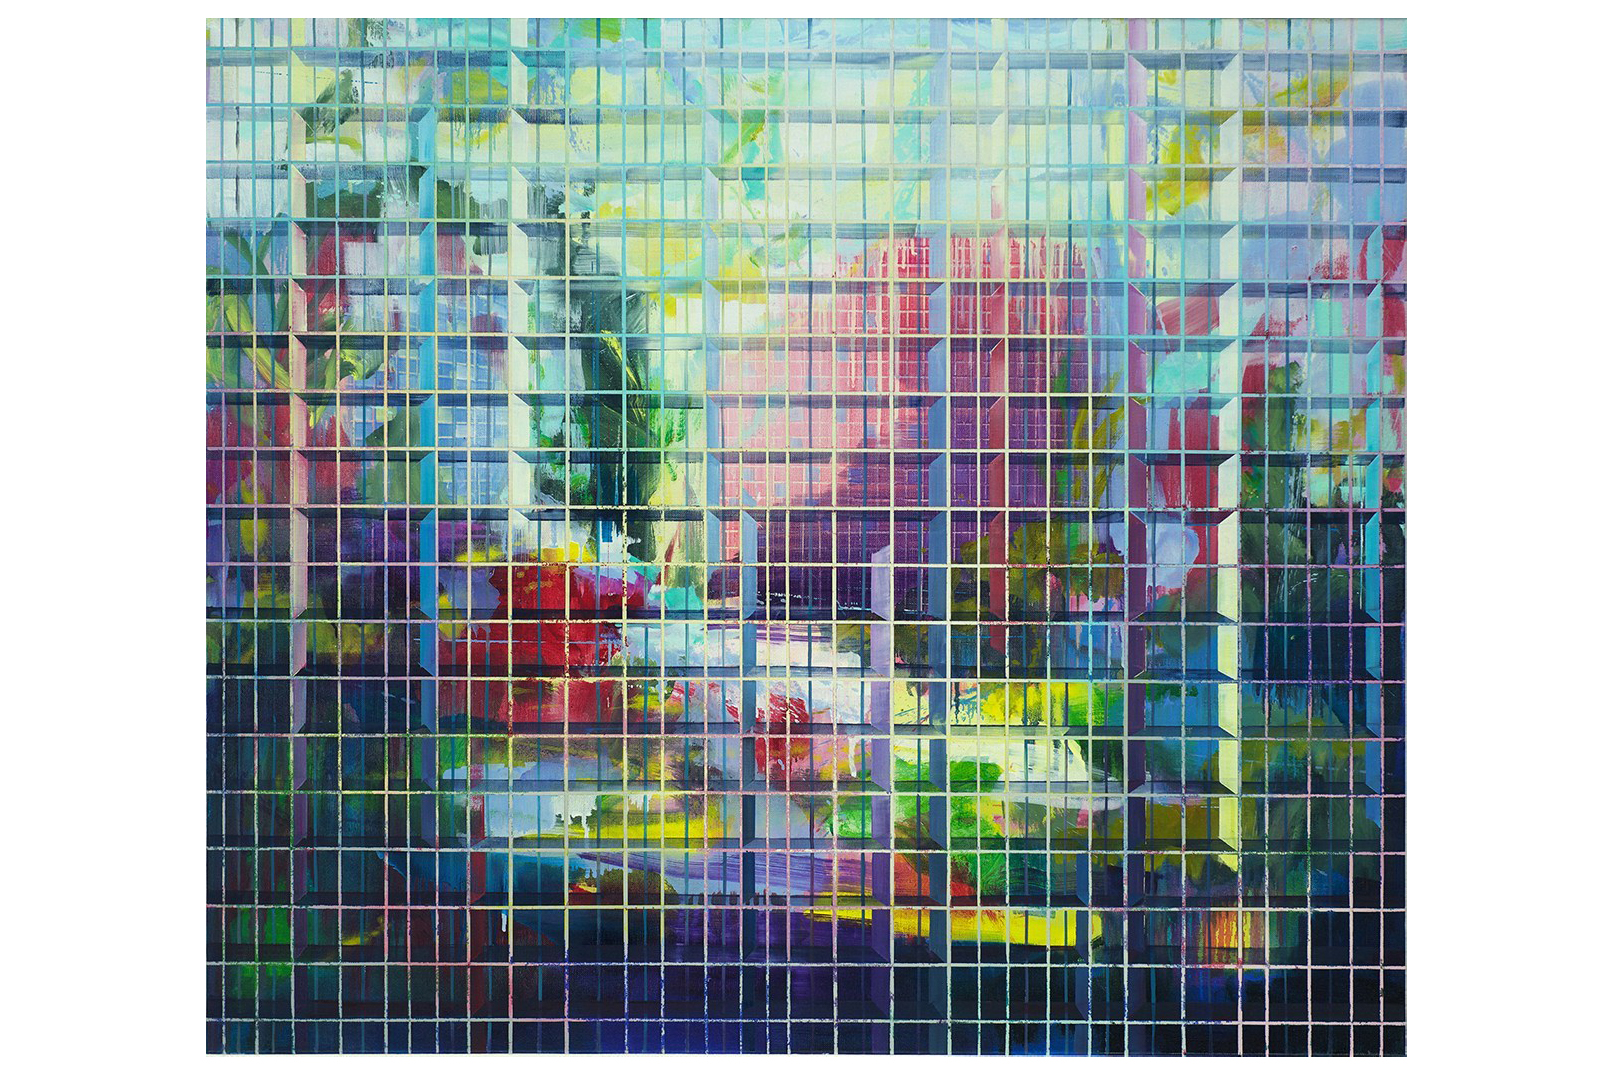 An intricate, colorful oil painting with a background that gives the impression of looking at a reflection in water. In the foreground, a three-dimensional grid overlays the blurry background.